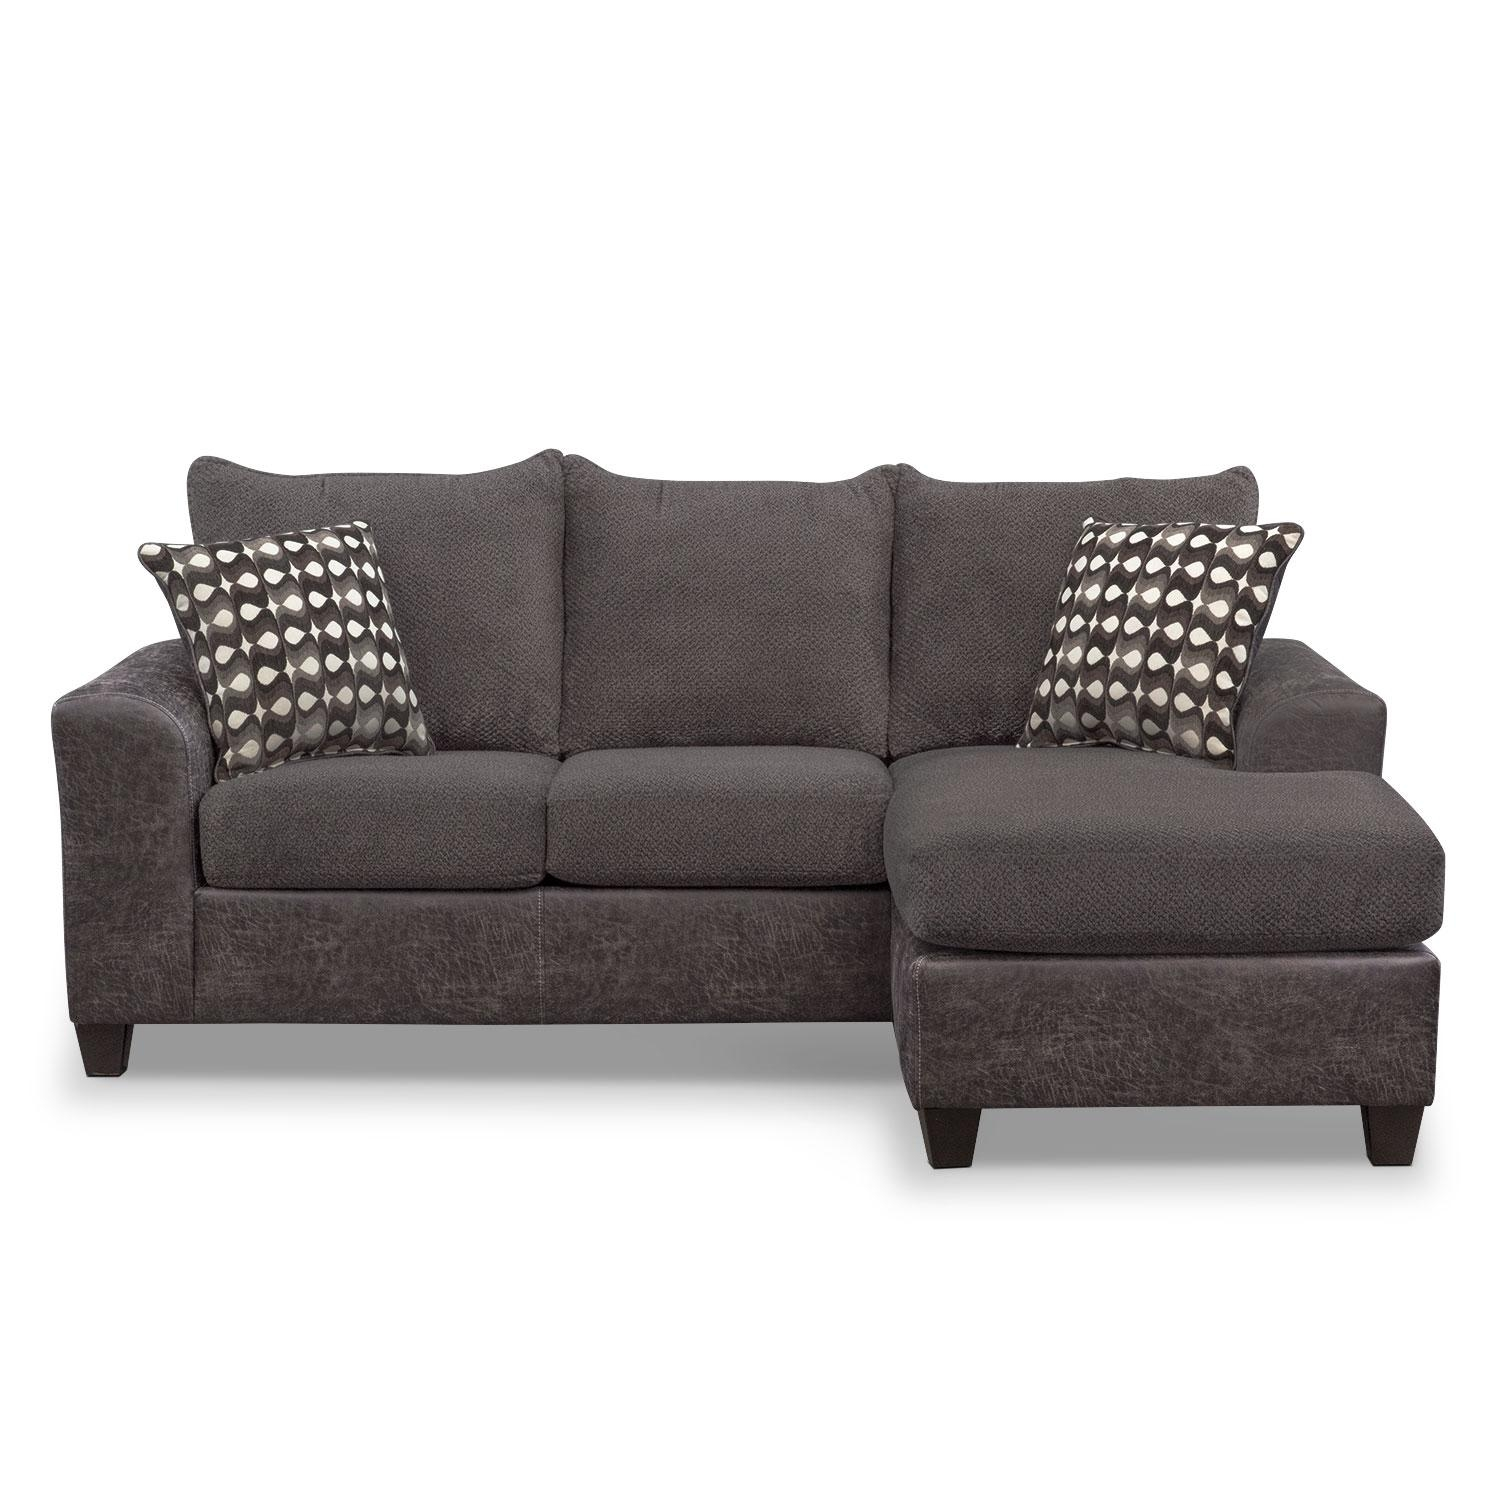 Brando Sofa With Chaise – Smoke | Value City Furniture Within Long Chaise Sofa (View 17 of 20)